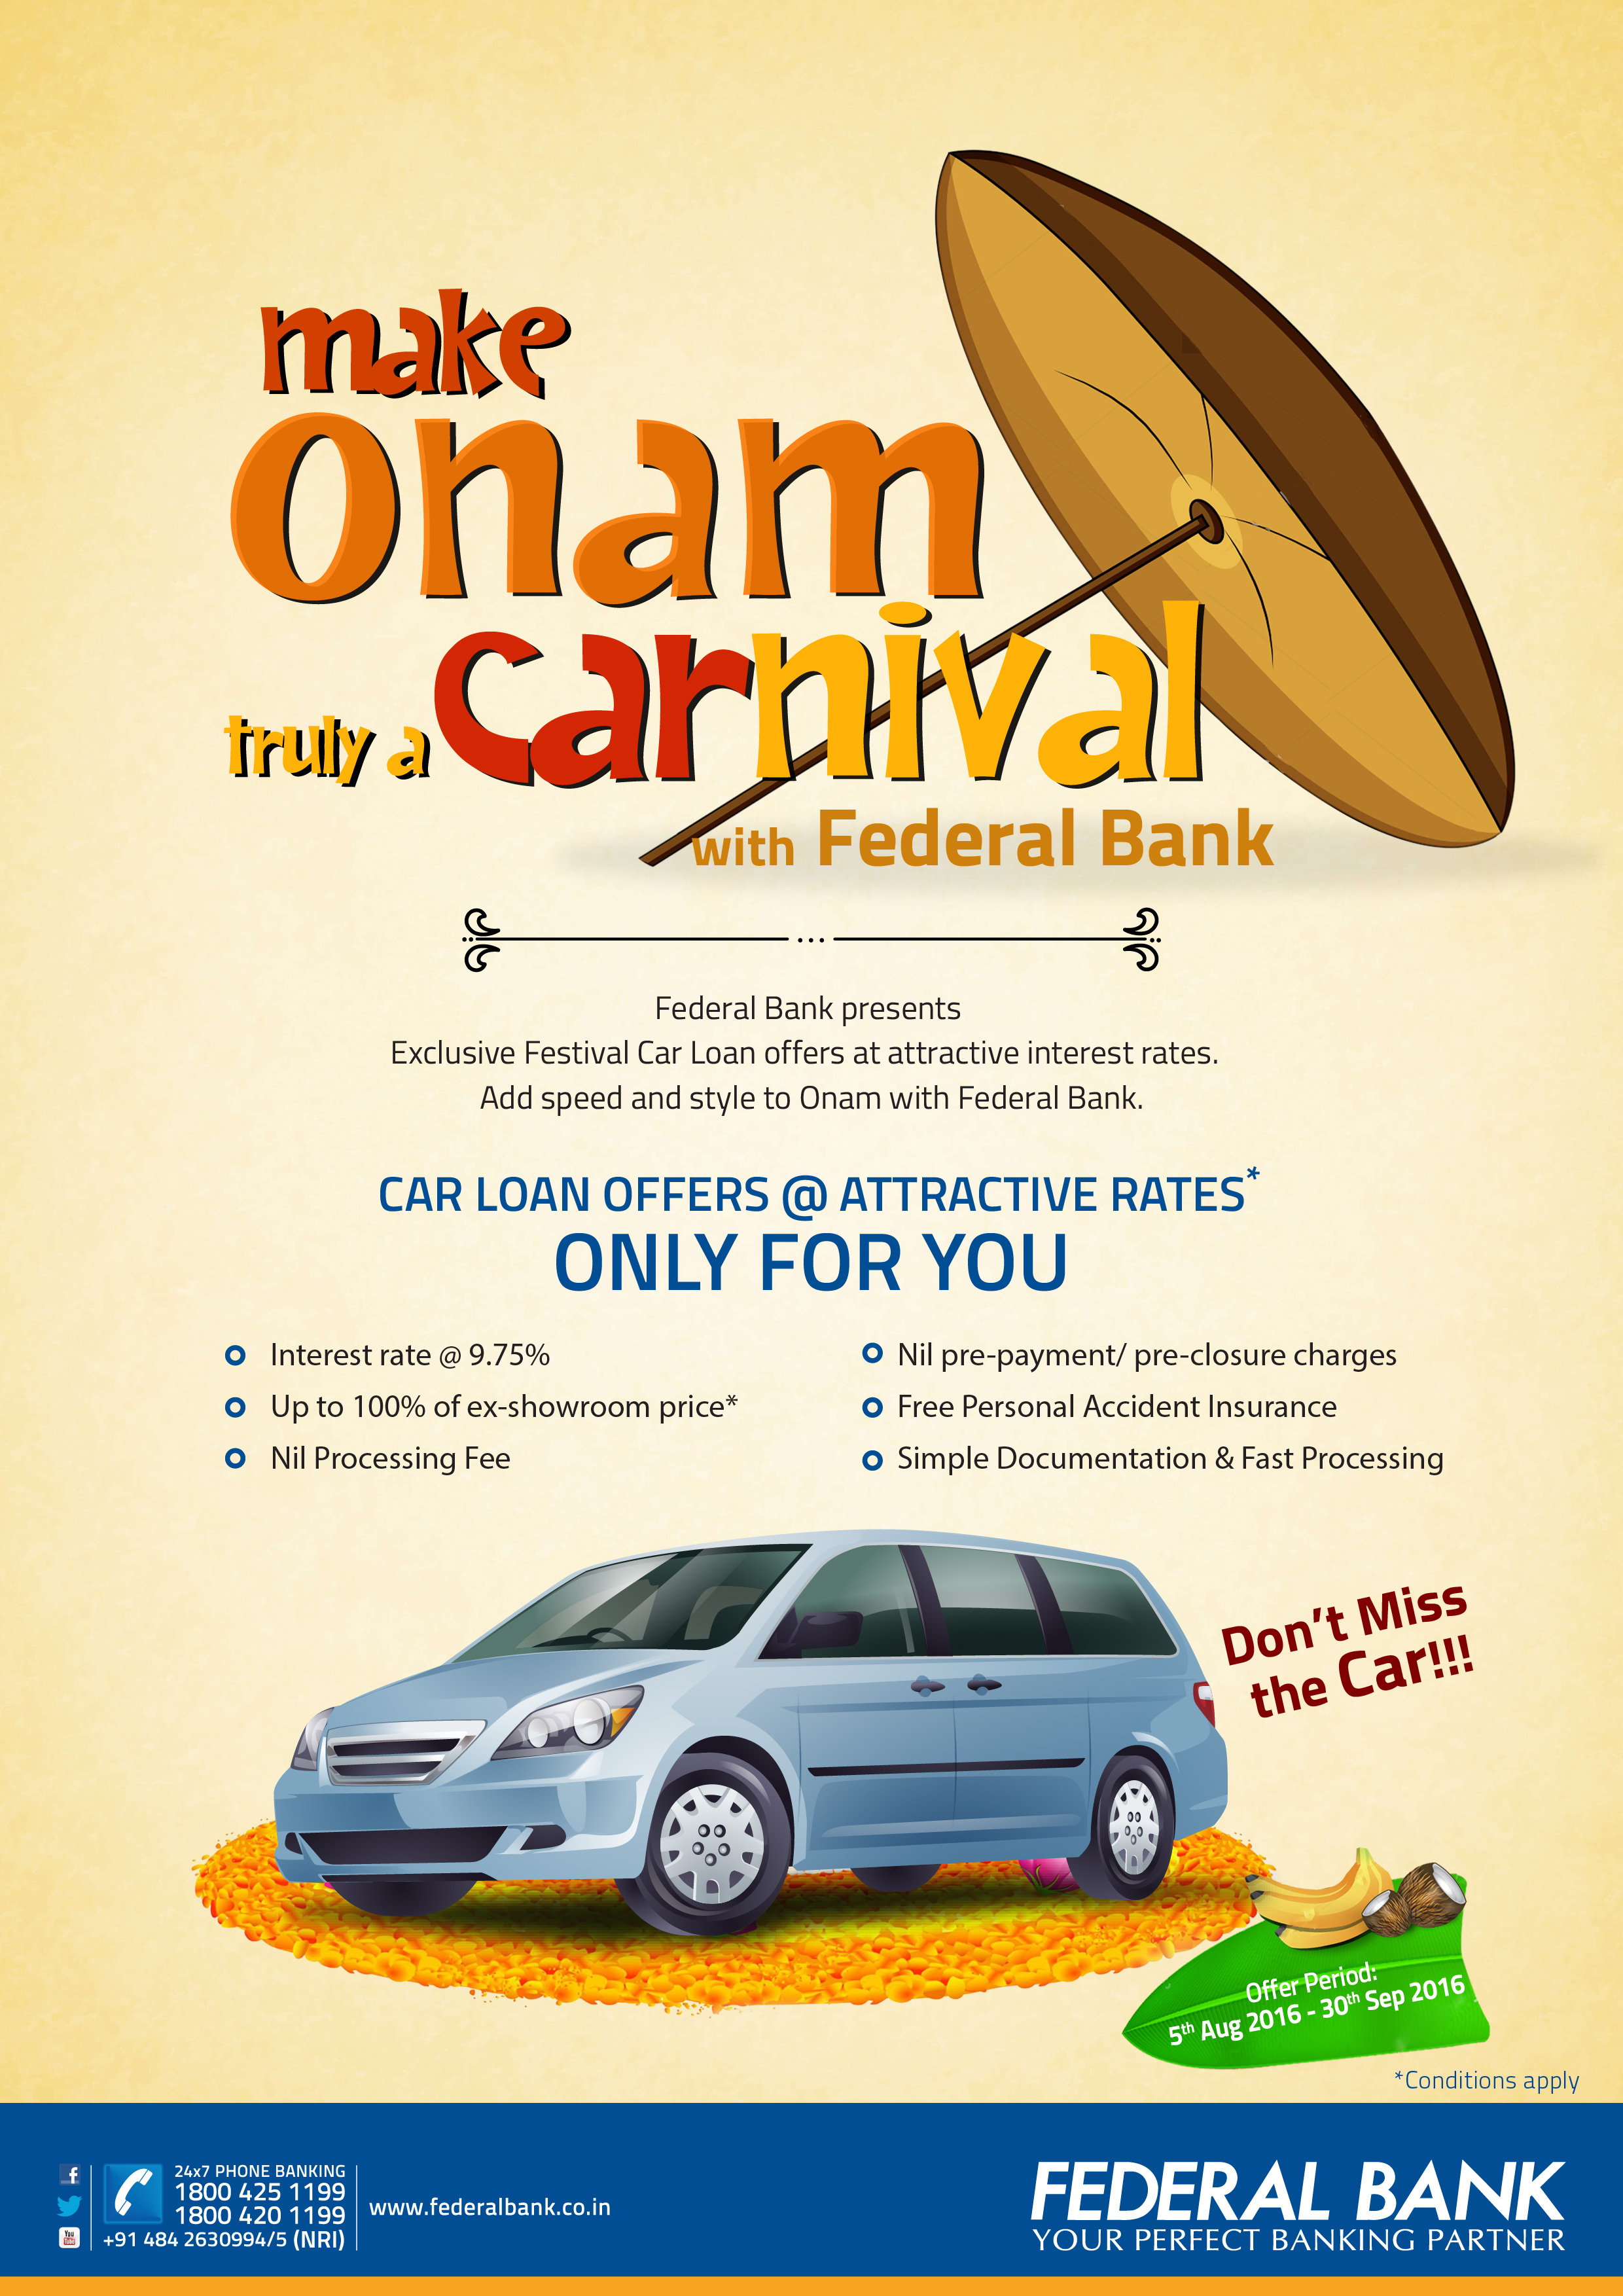 how to buy a car with a loan from a bank